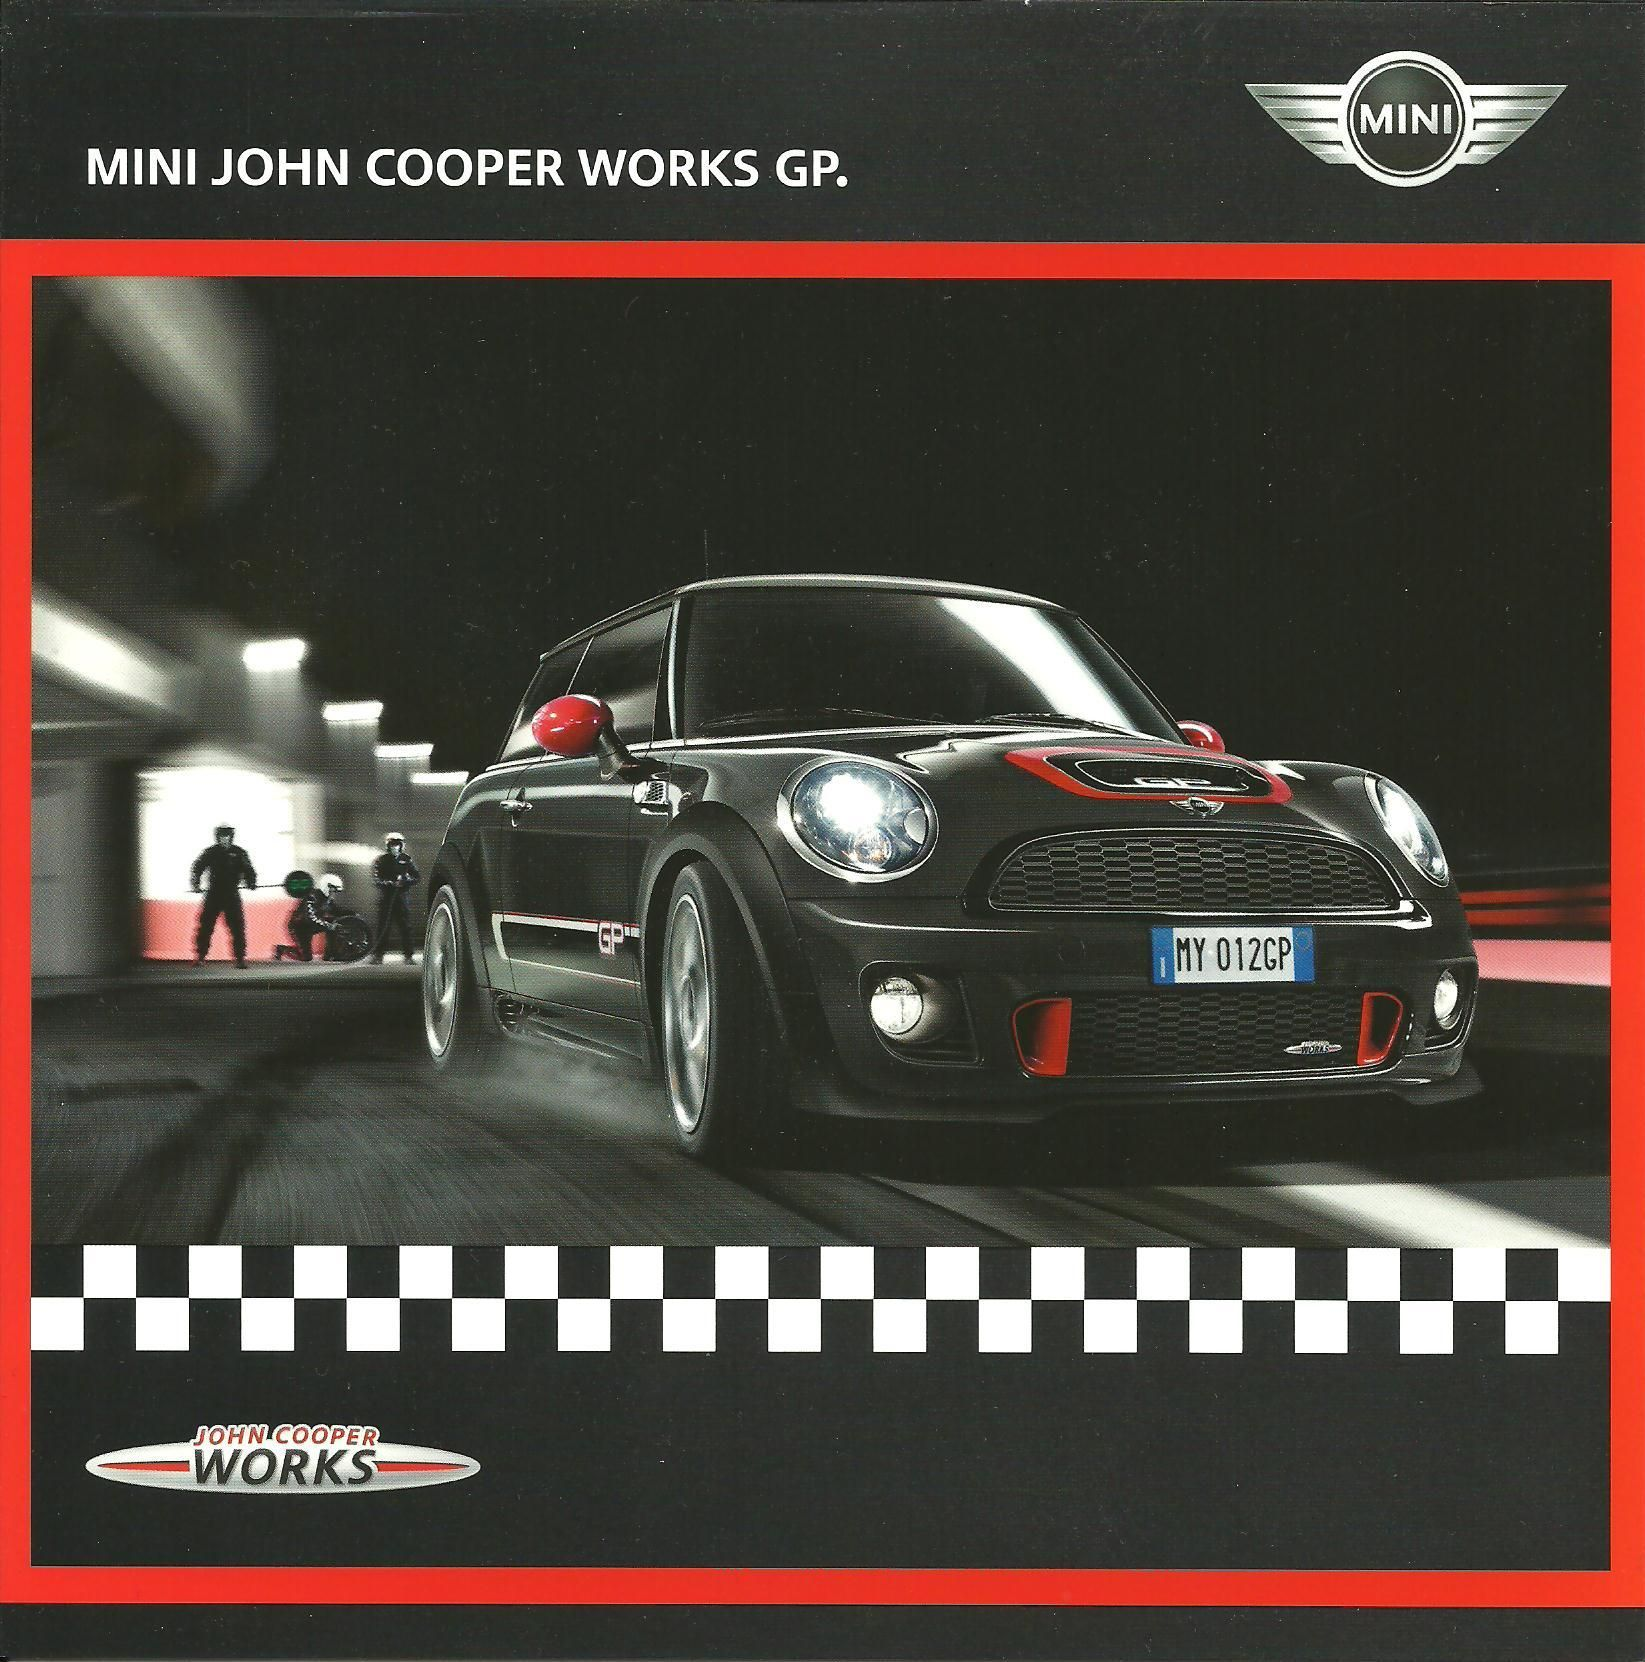 2012 Mini John Cooper Works Gp Brochure